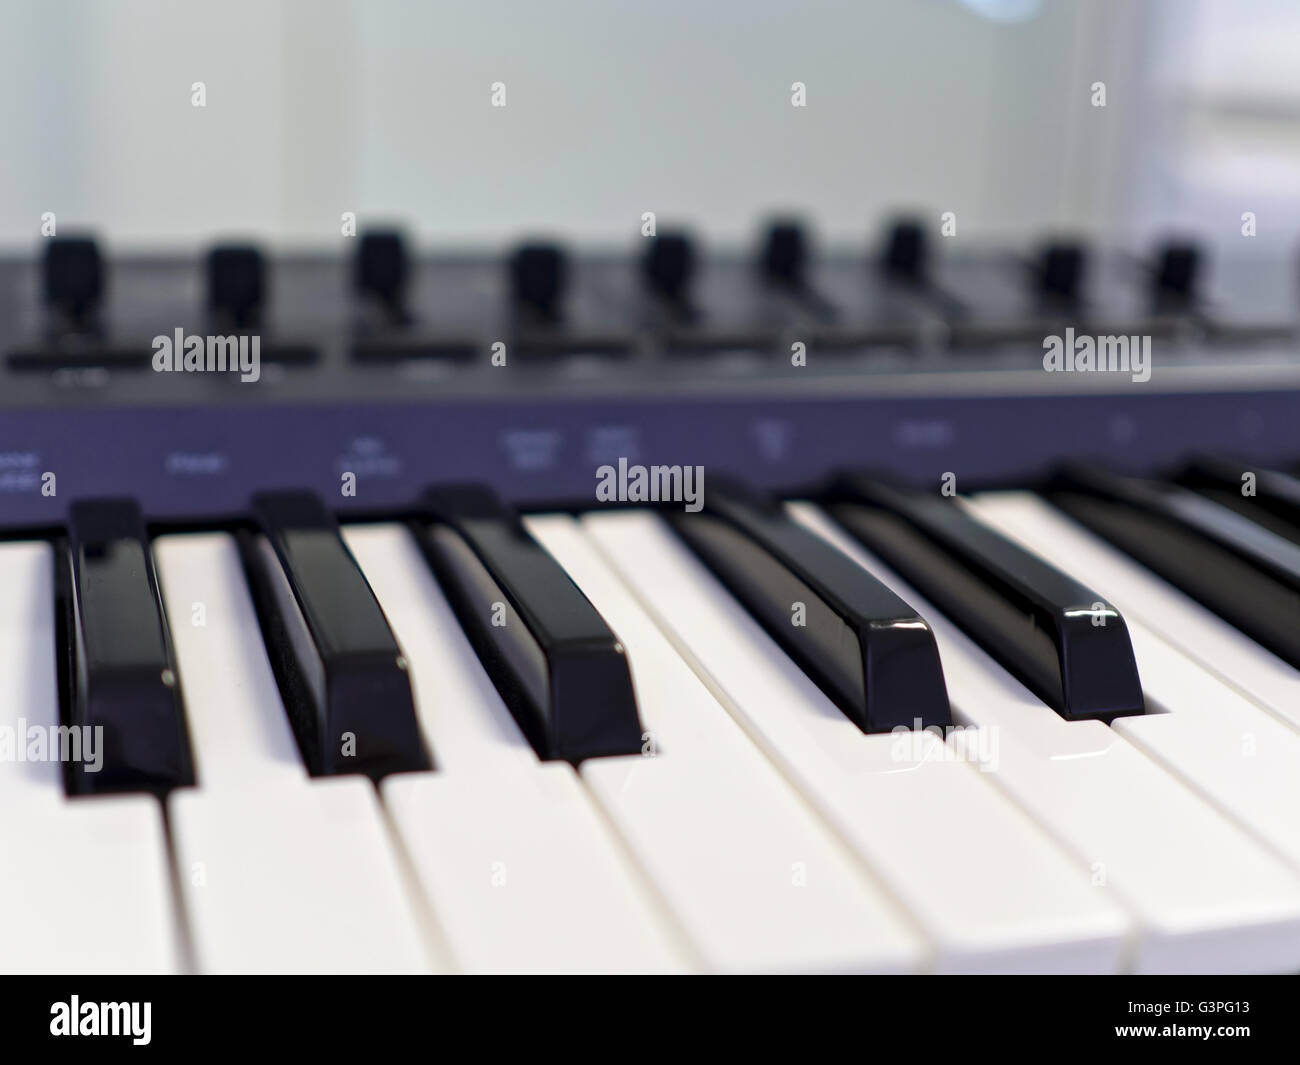 Synthesizer Keyboard Closeup - Stock Image